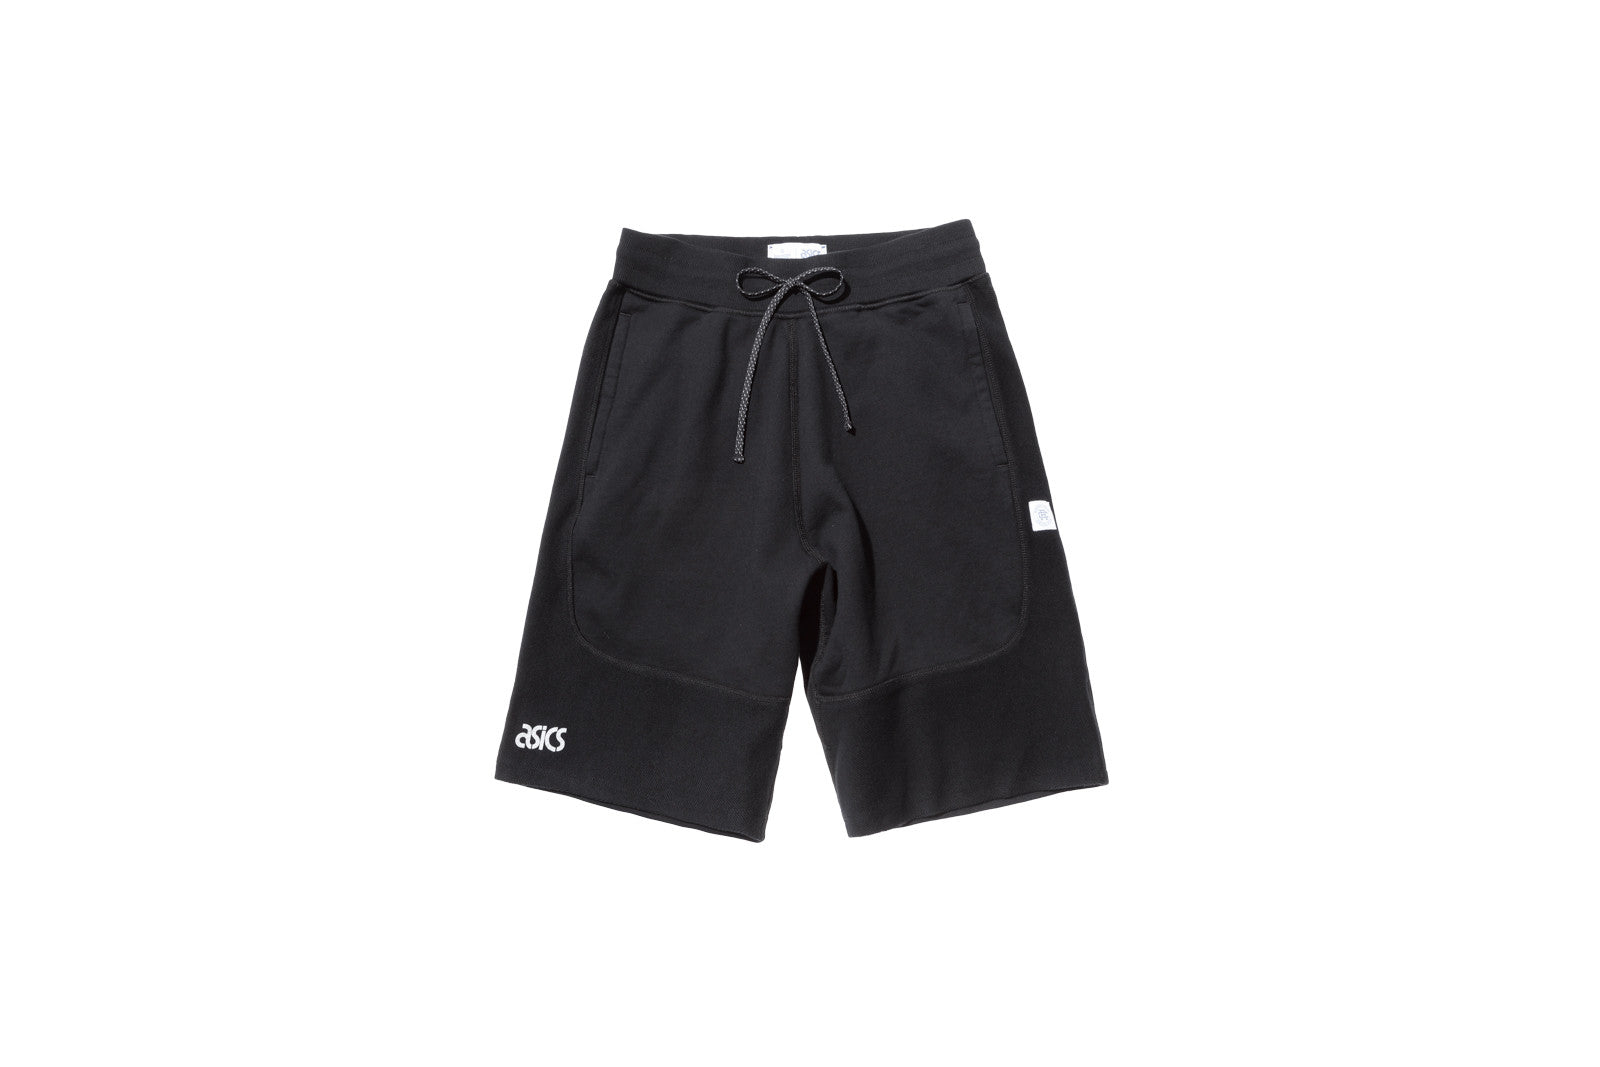 Asics x Reigning Champ Shorts - Black